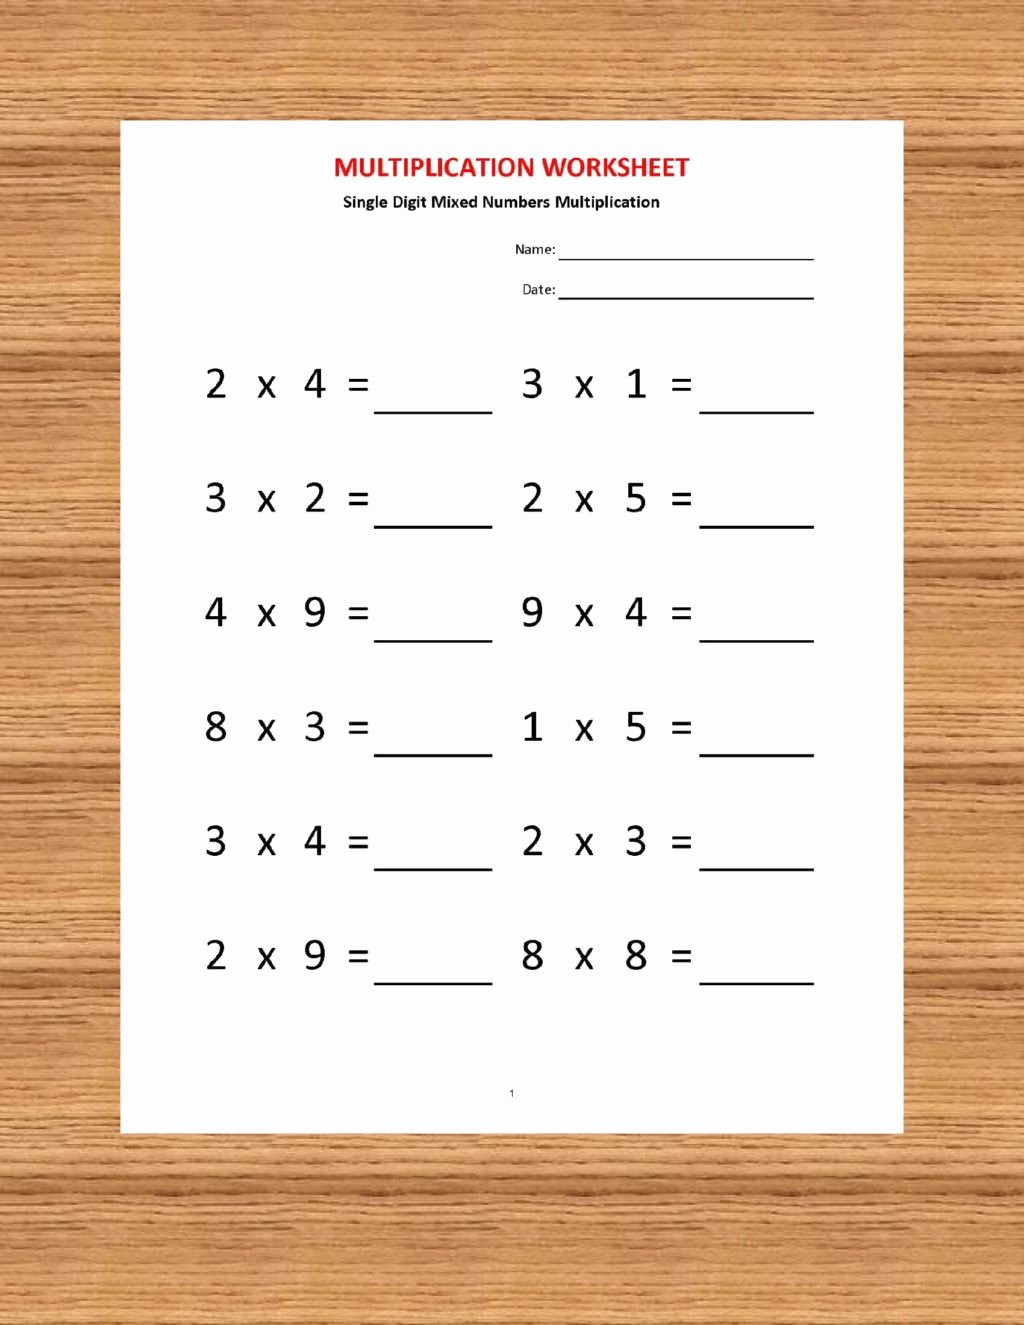 Math Multiplication Worksheets 2nd Grade Best Of Worksheet Splendi 2nd Grade Math Worksheetsltiplication